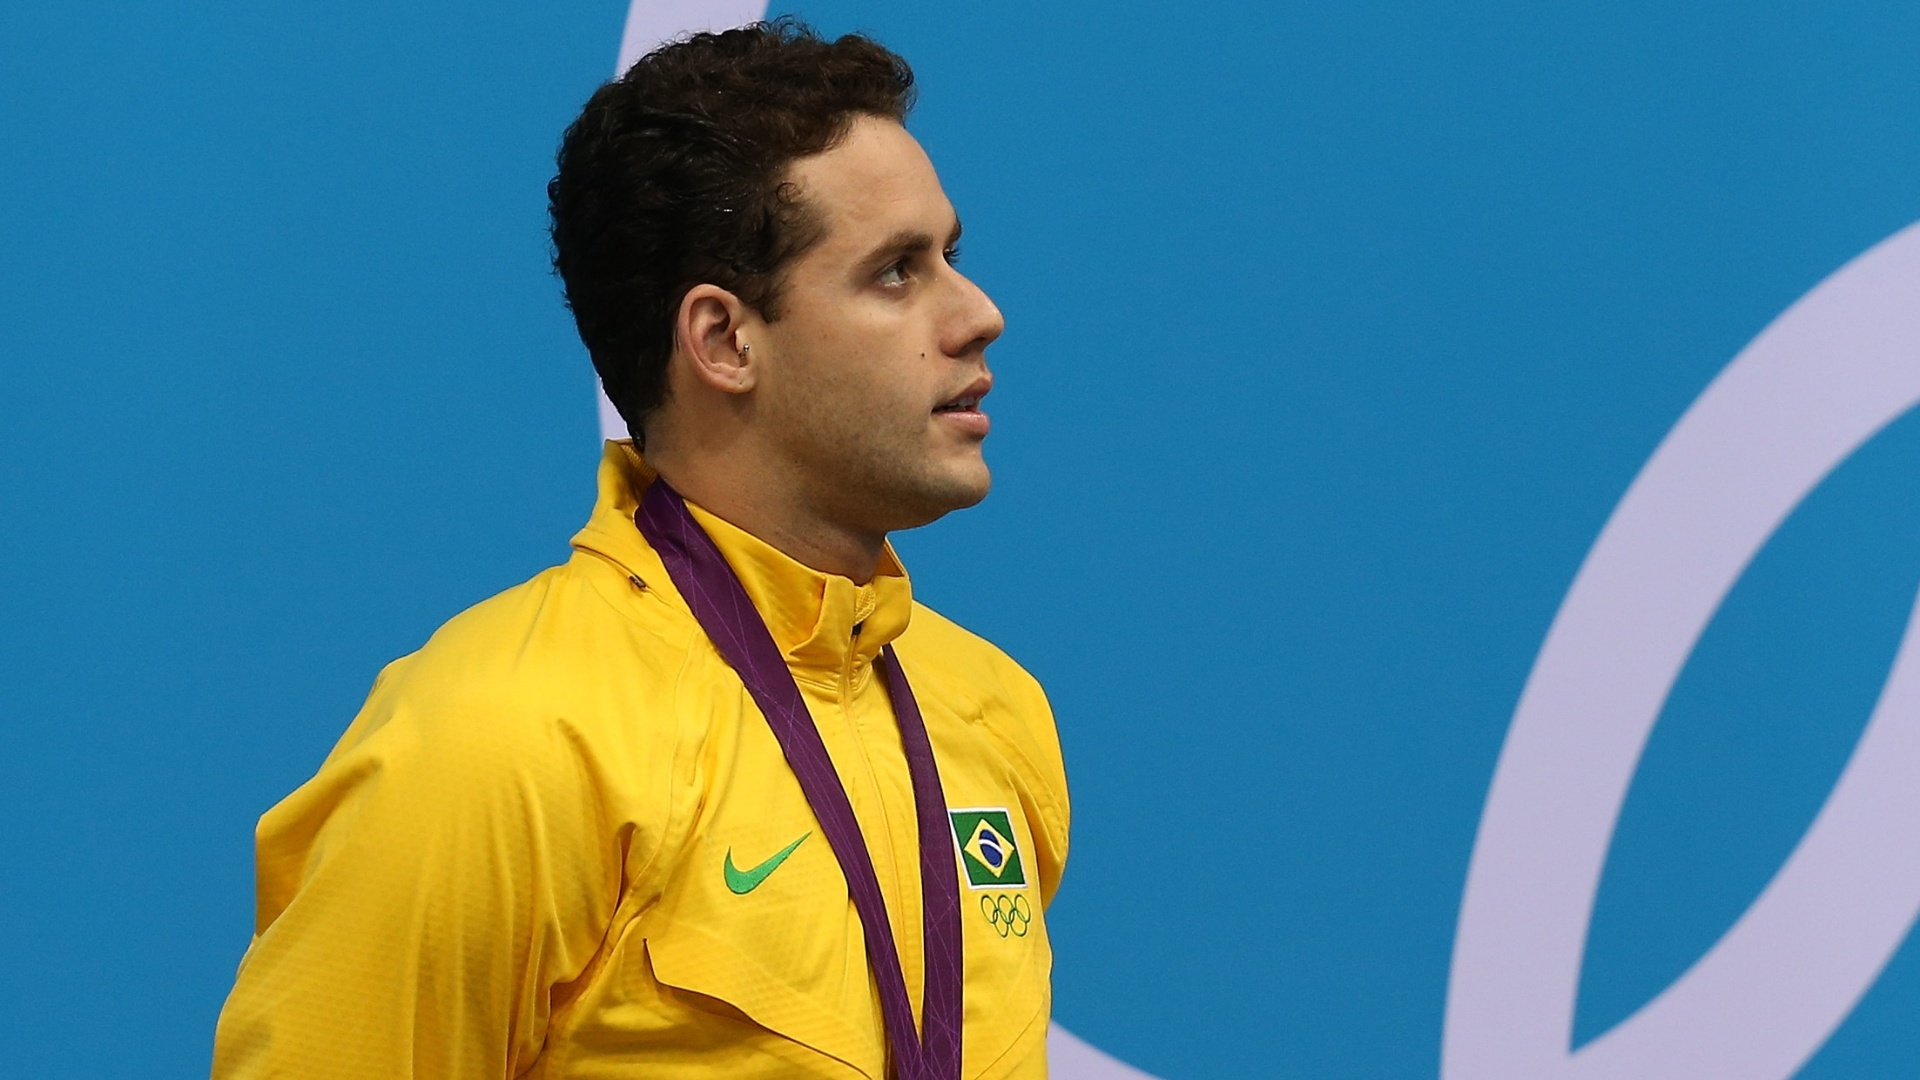 Nadador Thiago Pereira posa com a medalha de prata conquistada nos 400 m medley, nos Jogos Olmpicos de Londres